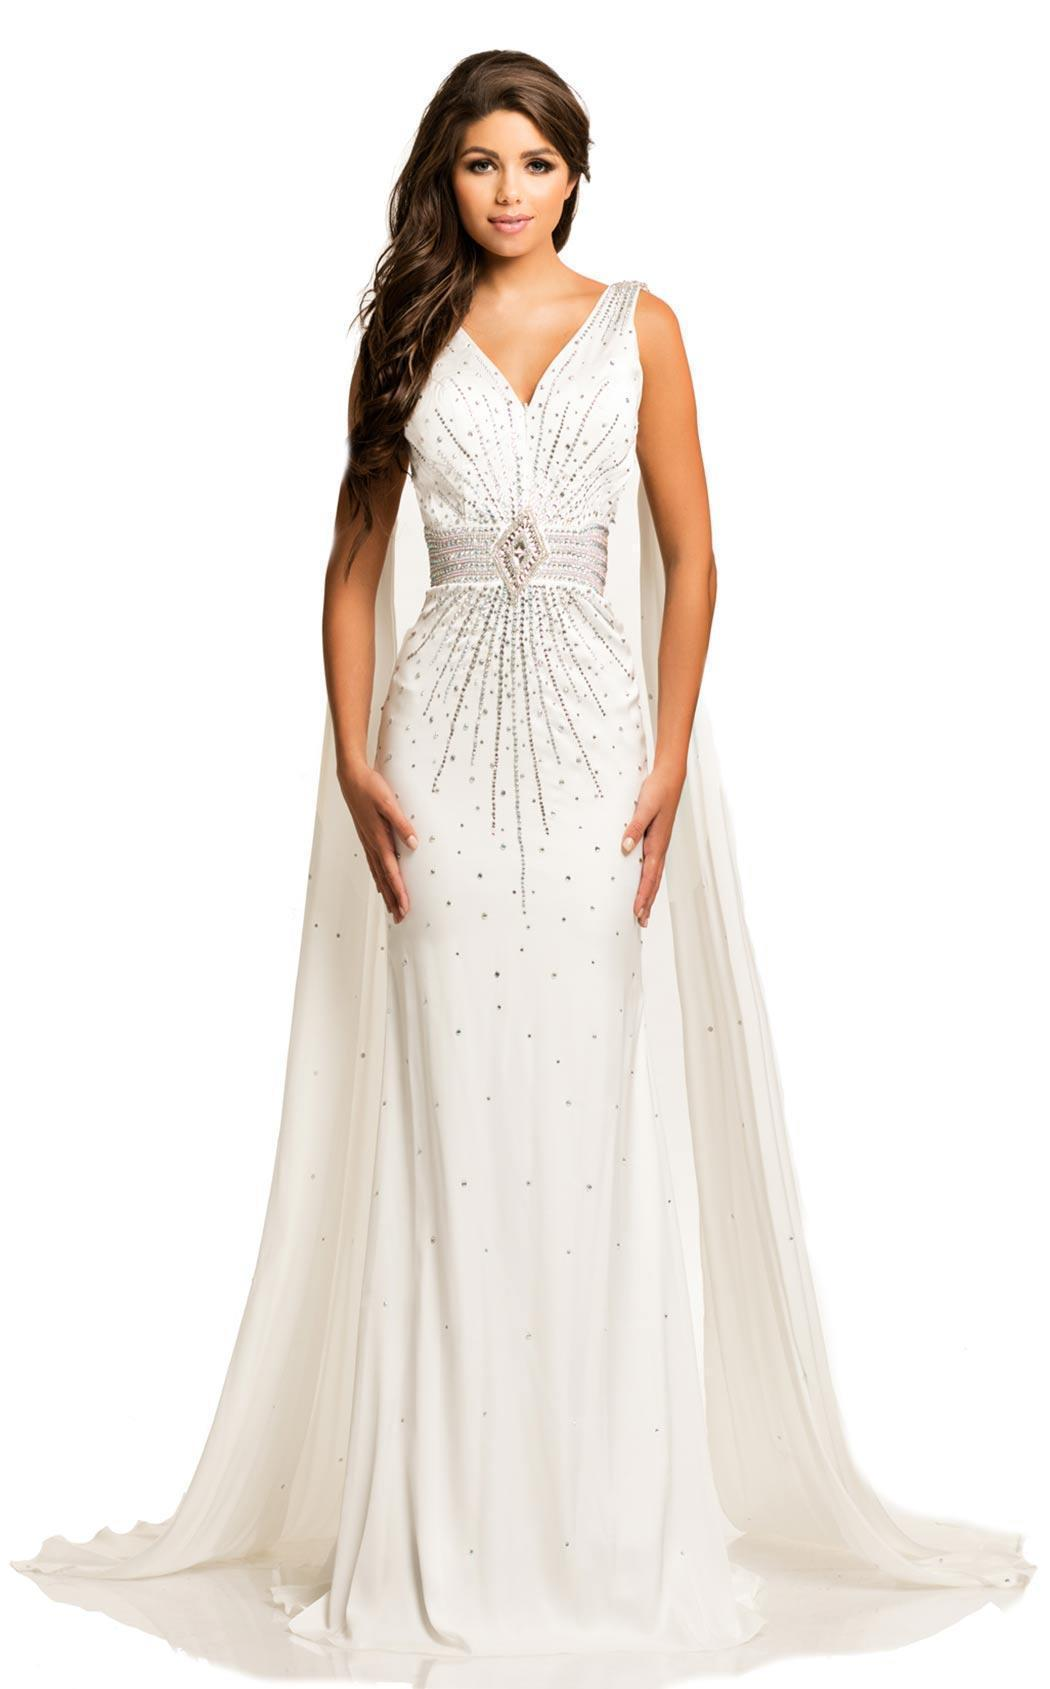 Johnathan Kayne Crystal Studded Evening Gown - ReveBoutique